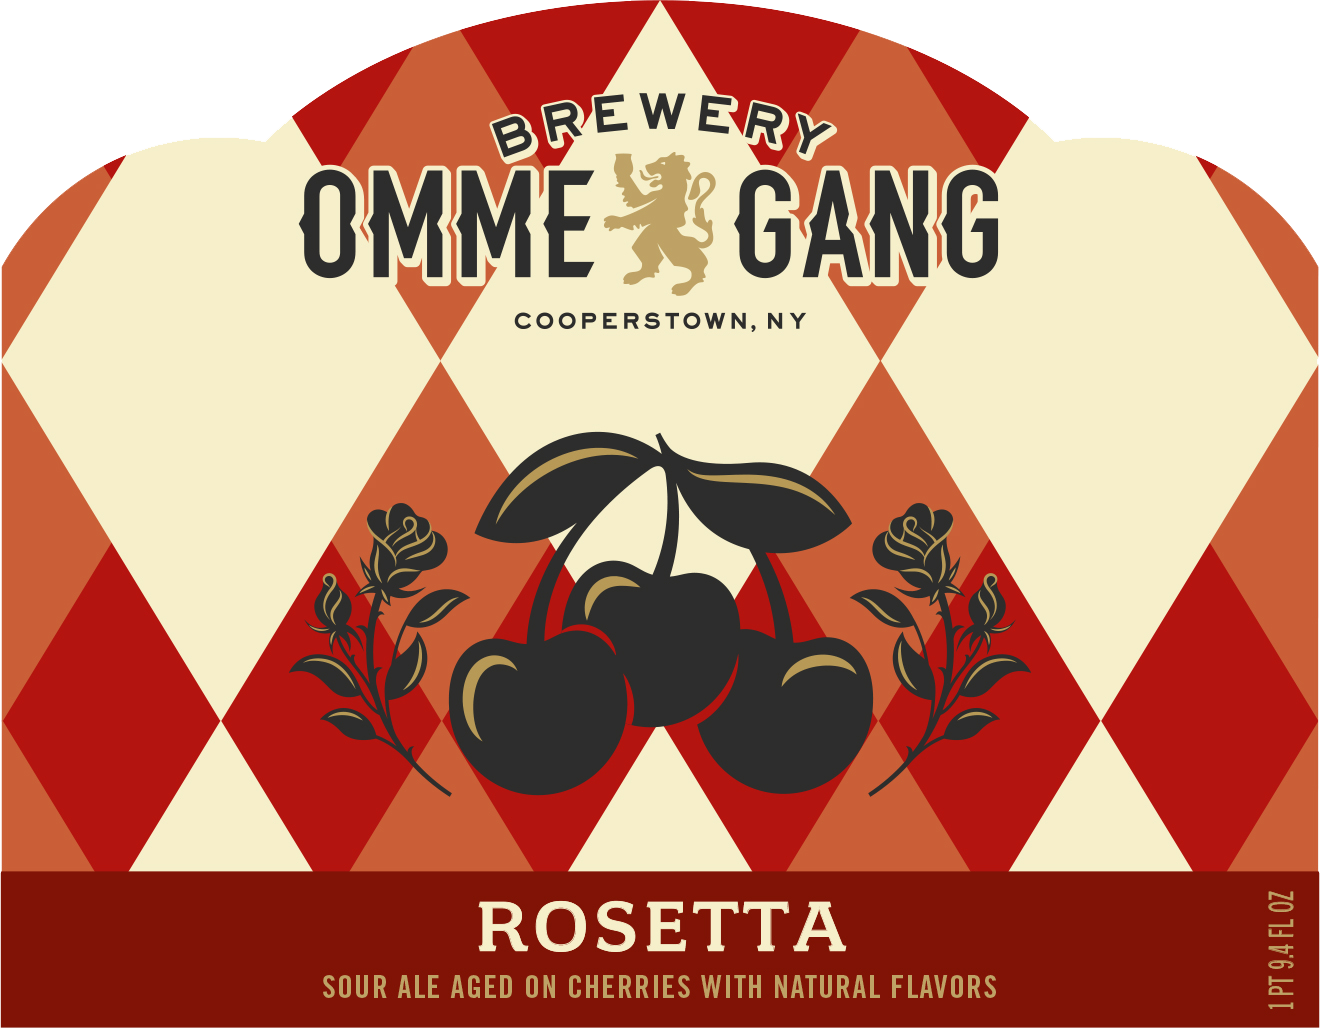 TheHopReview-Ommegang-NewPackaging-02rosetta.png